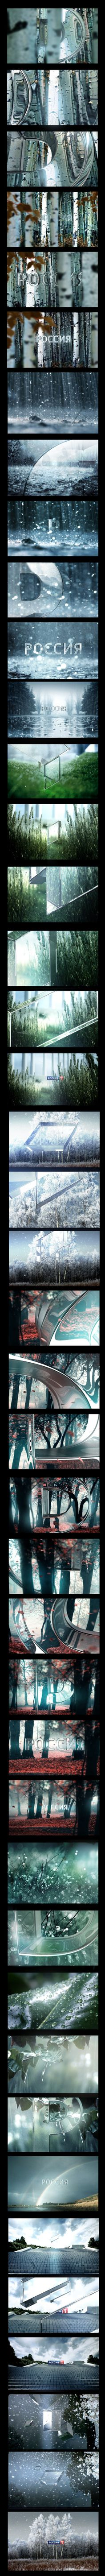 RUSSIA 1 channel ID's  for autumn 2012 by egor antonov, via Behance